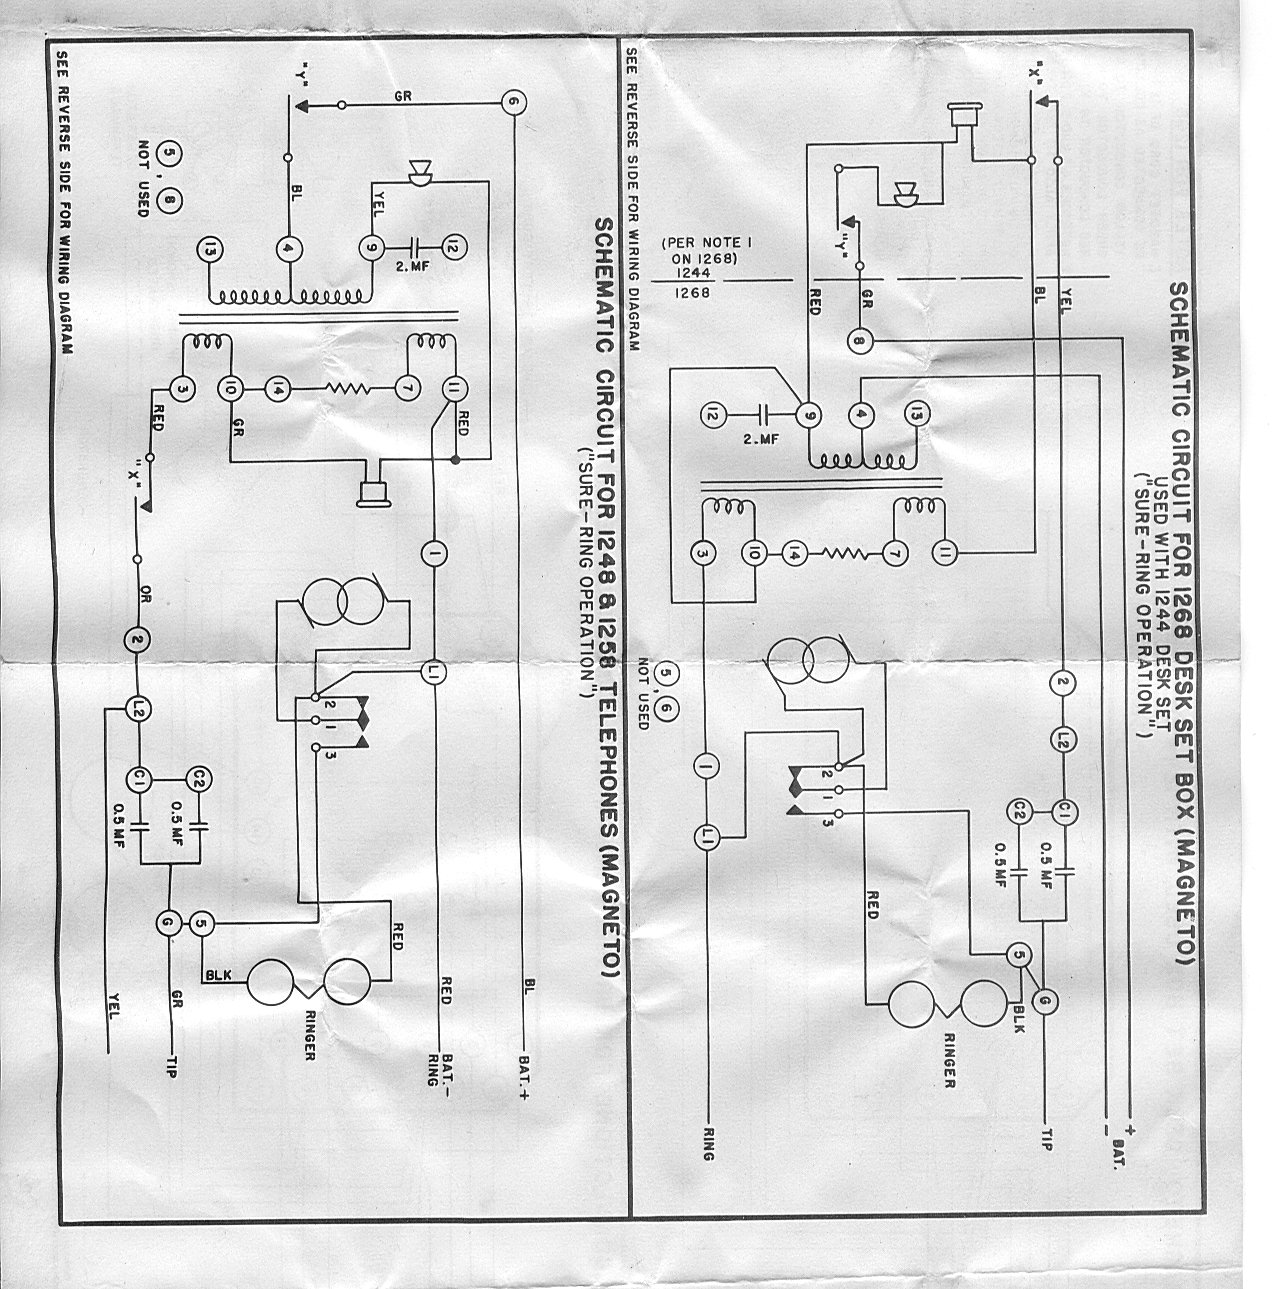 Telephone Technical References Phone Line Wiring Diagram Magneto Desk Set Stromberg Carlson 1268 Box Used With 1244